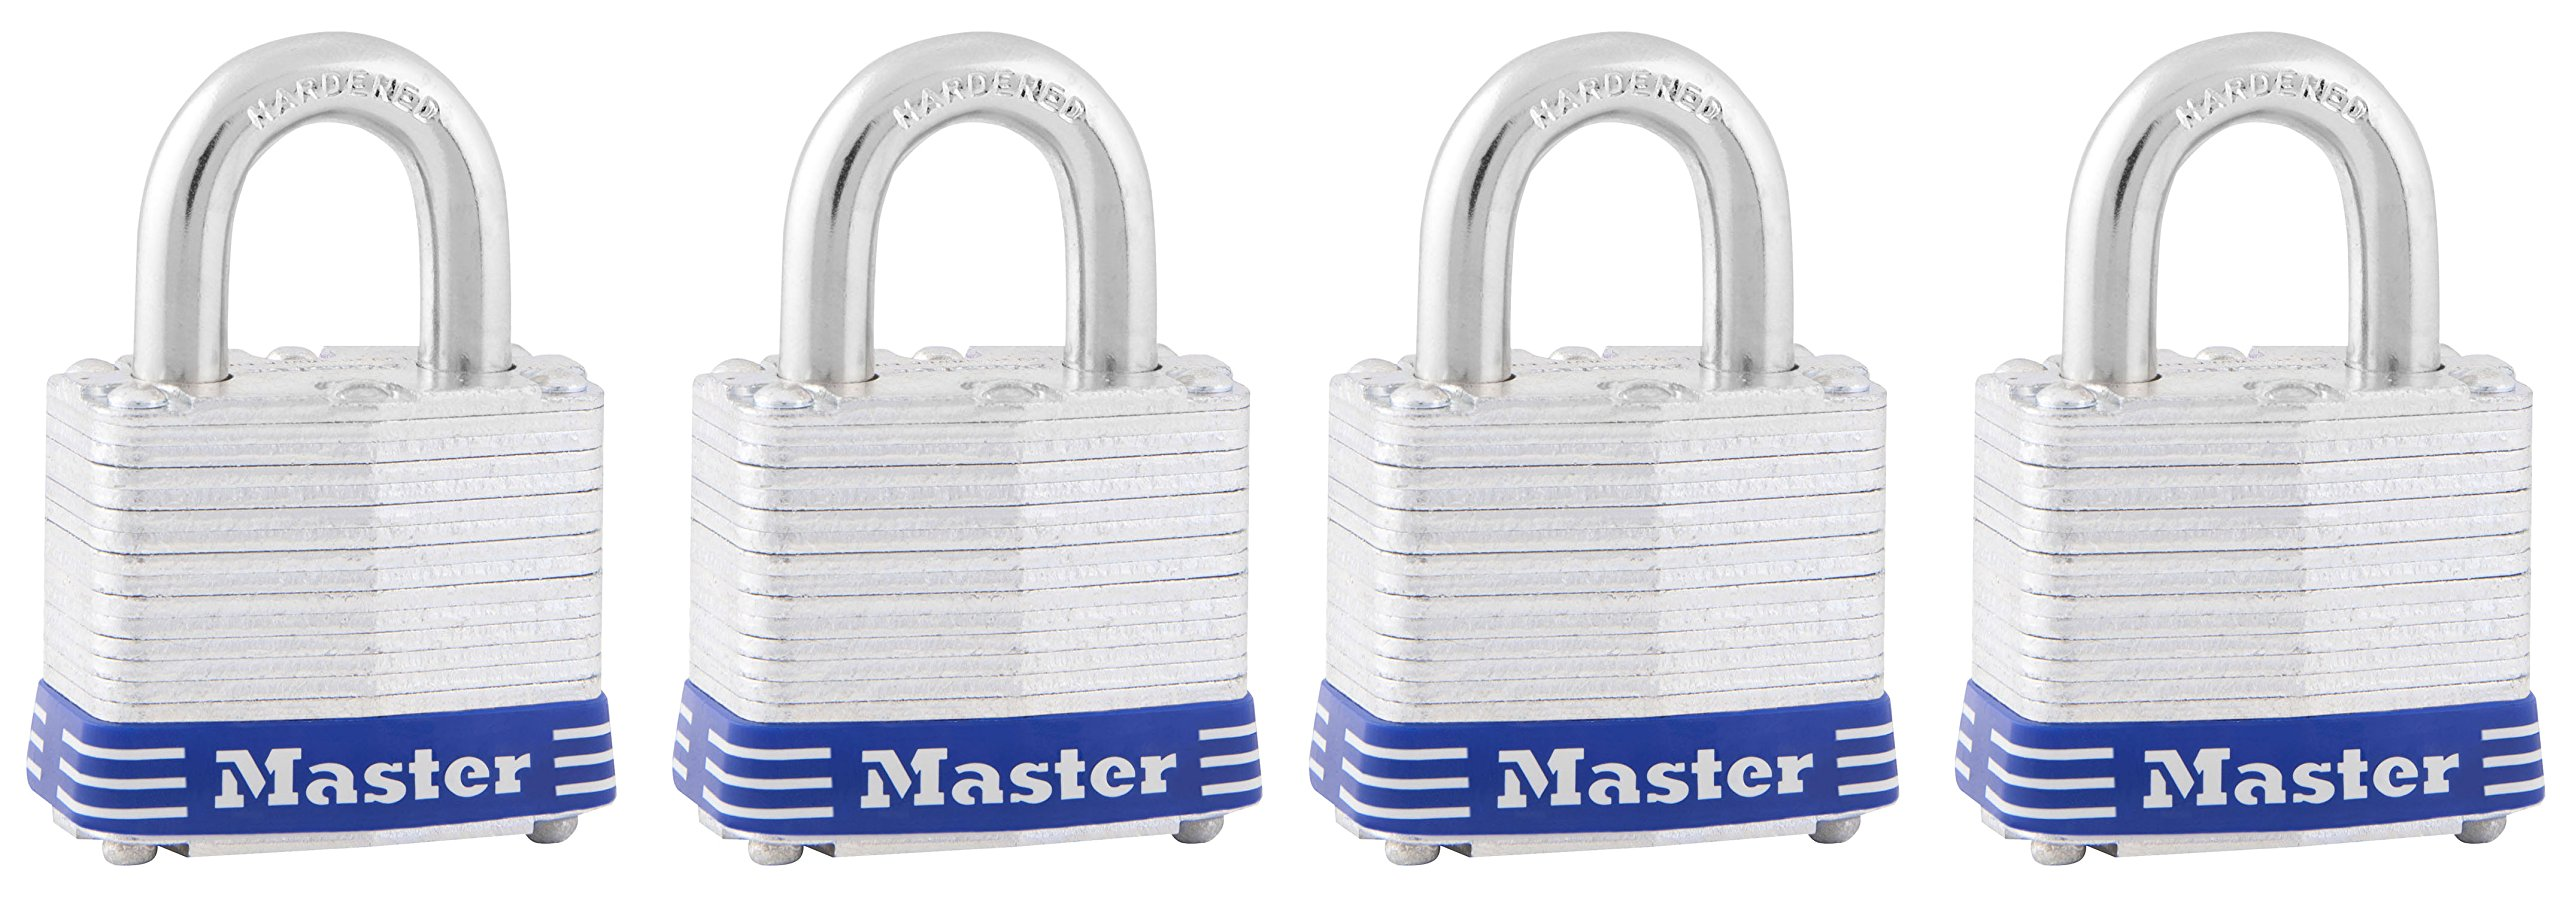 Master Lock Padlock, Laminated Steel Lock, 1-9/16 in. Wide, 3008D (Pack of 4-Keyed Alike)